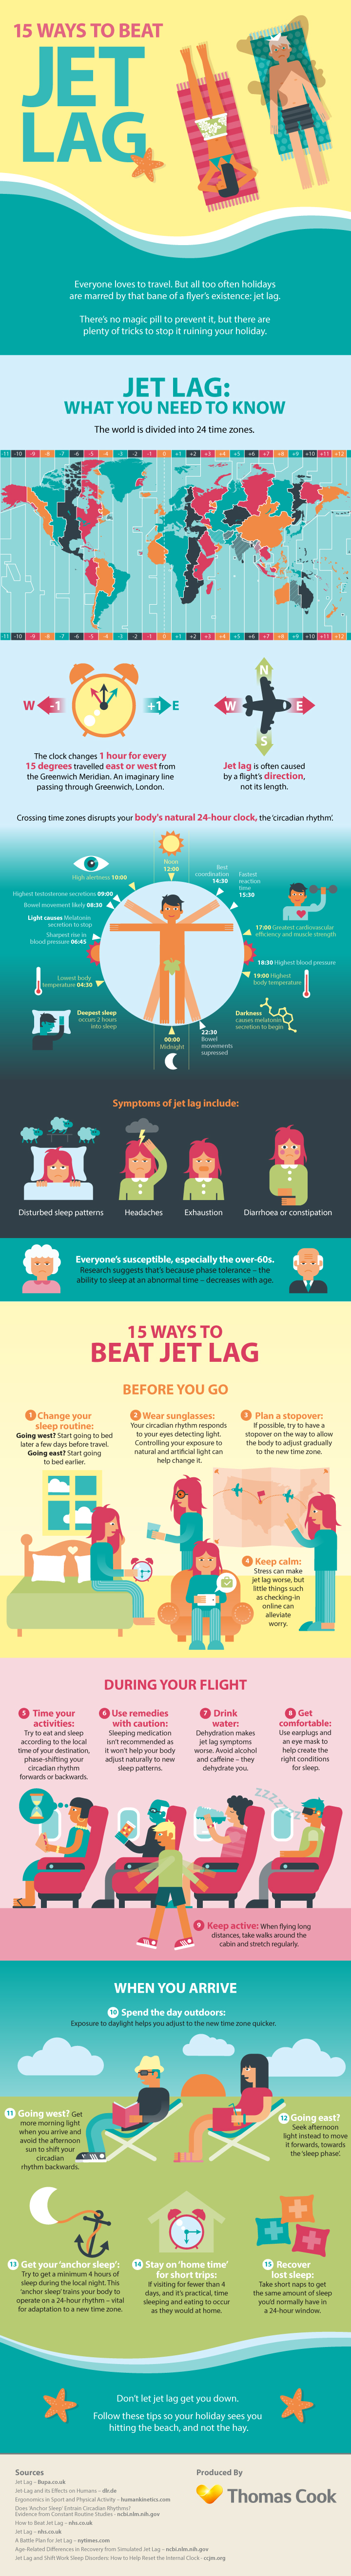 Travel Tips: 15 Ways to Beat Jet Lag (#Infographic)